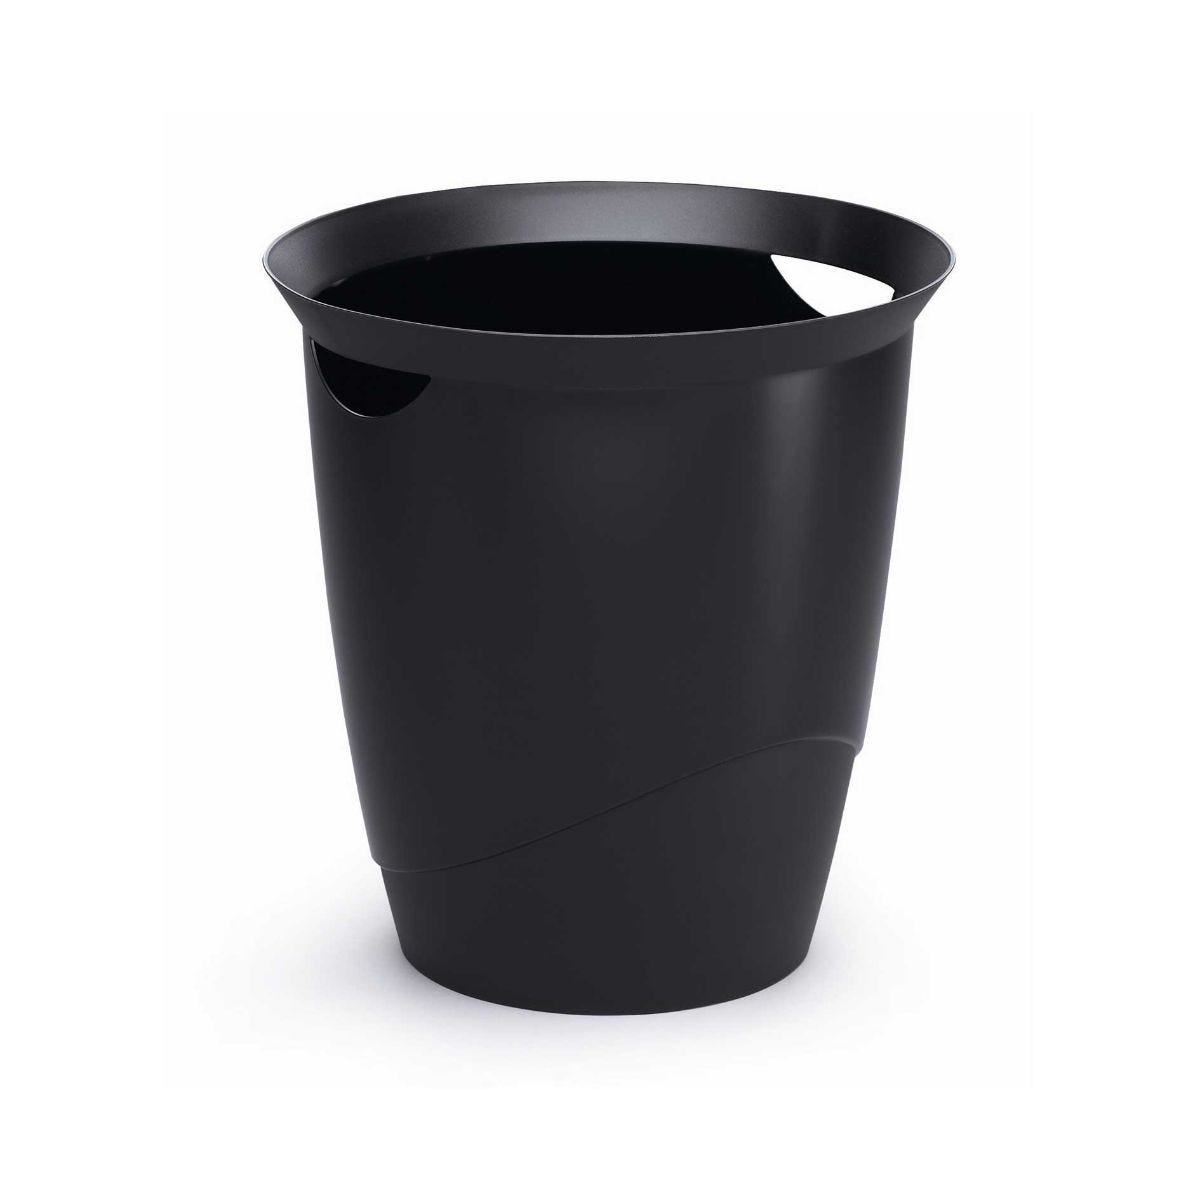 Durable Plastic Waste Bin, Black